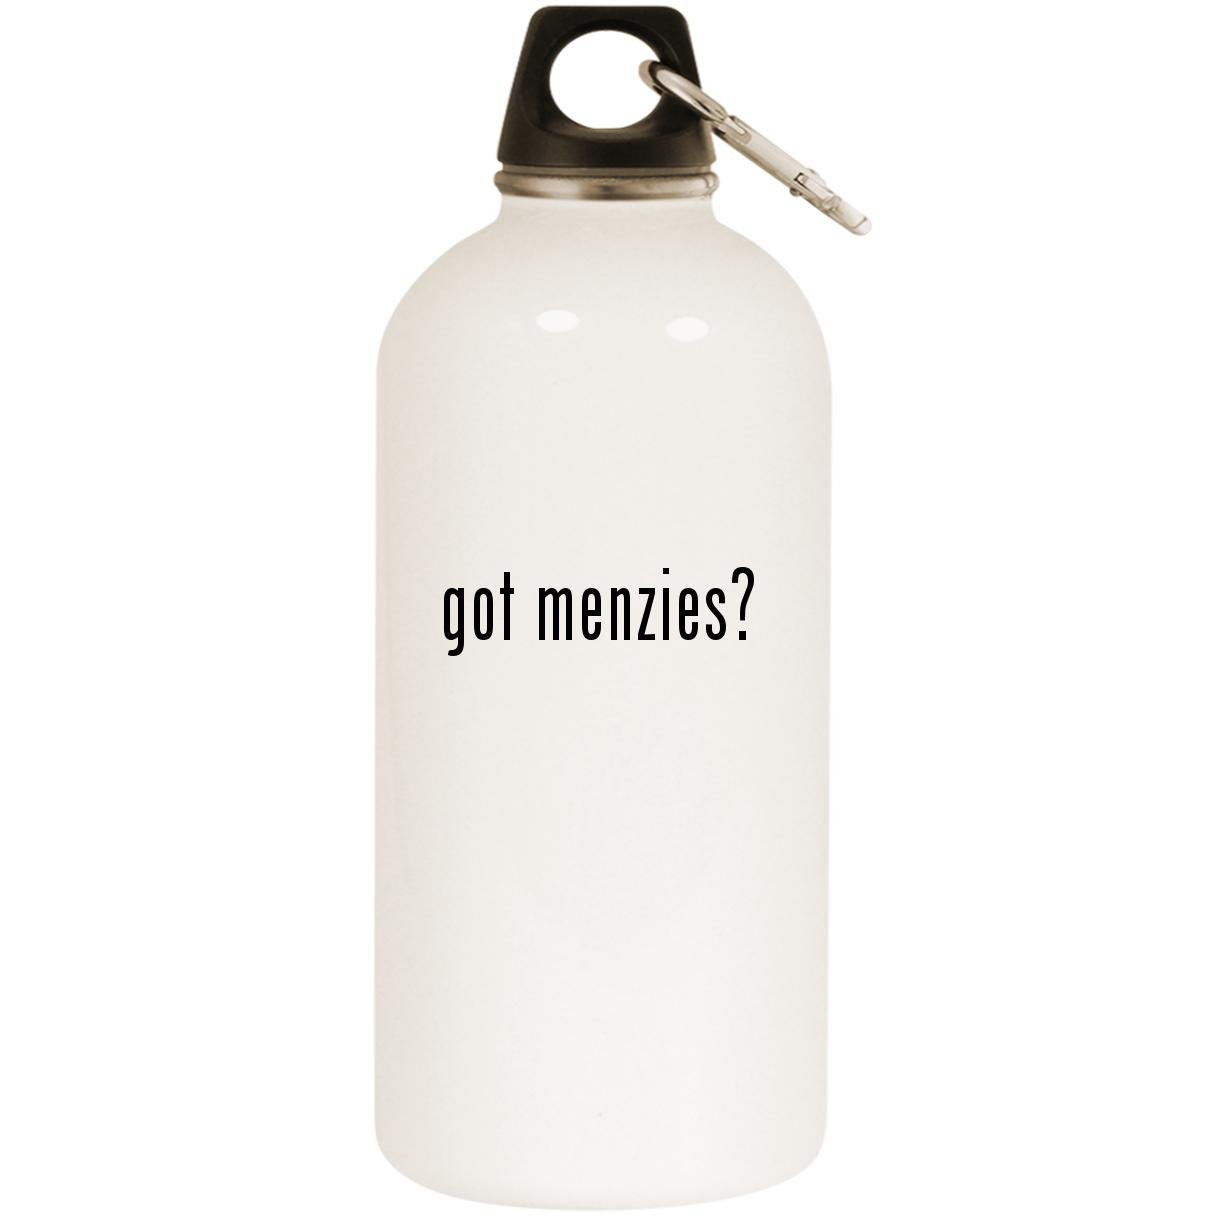 got menzies? - White 20oz Stainless Steel Water Bottle with Carabiner